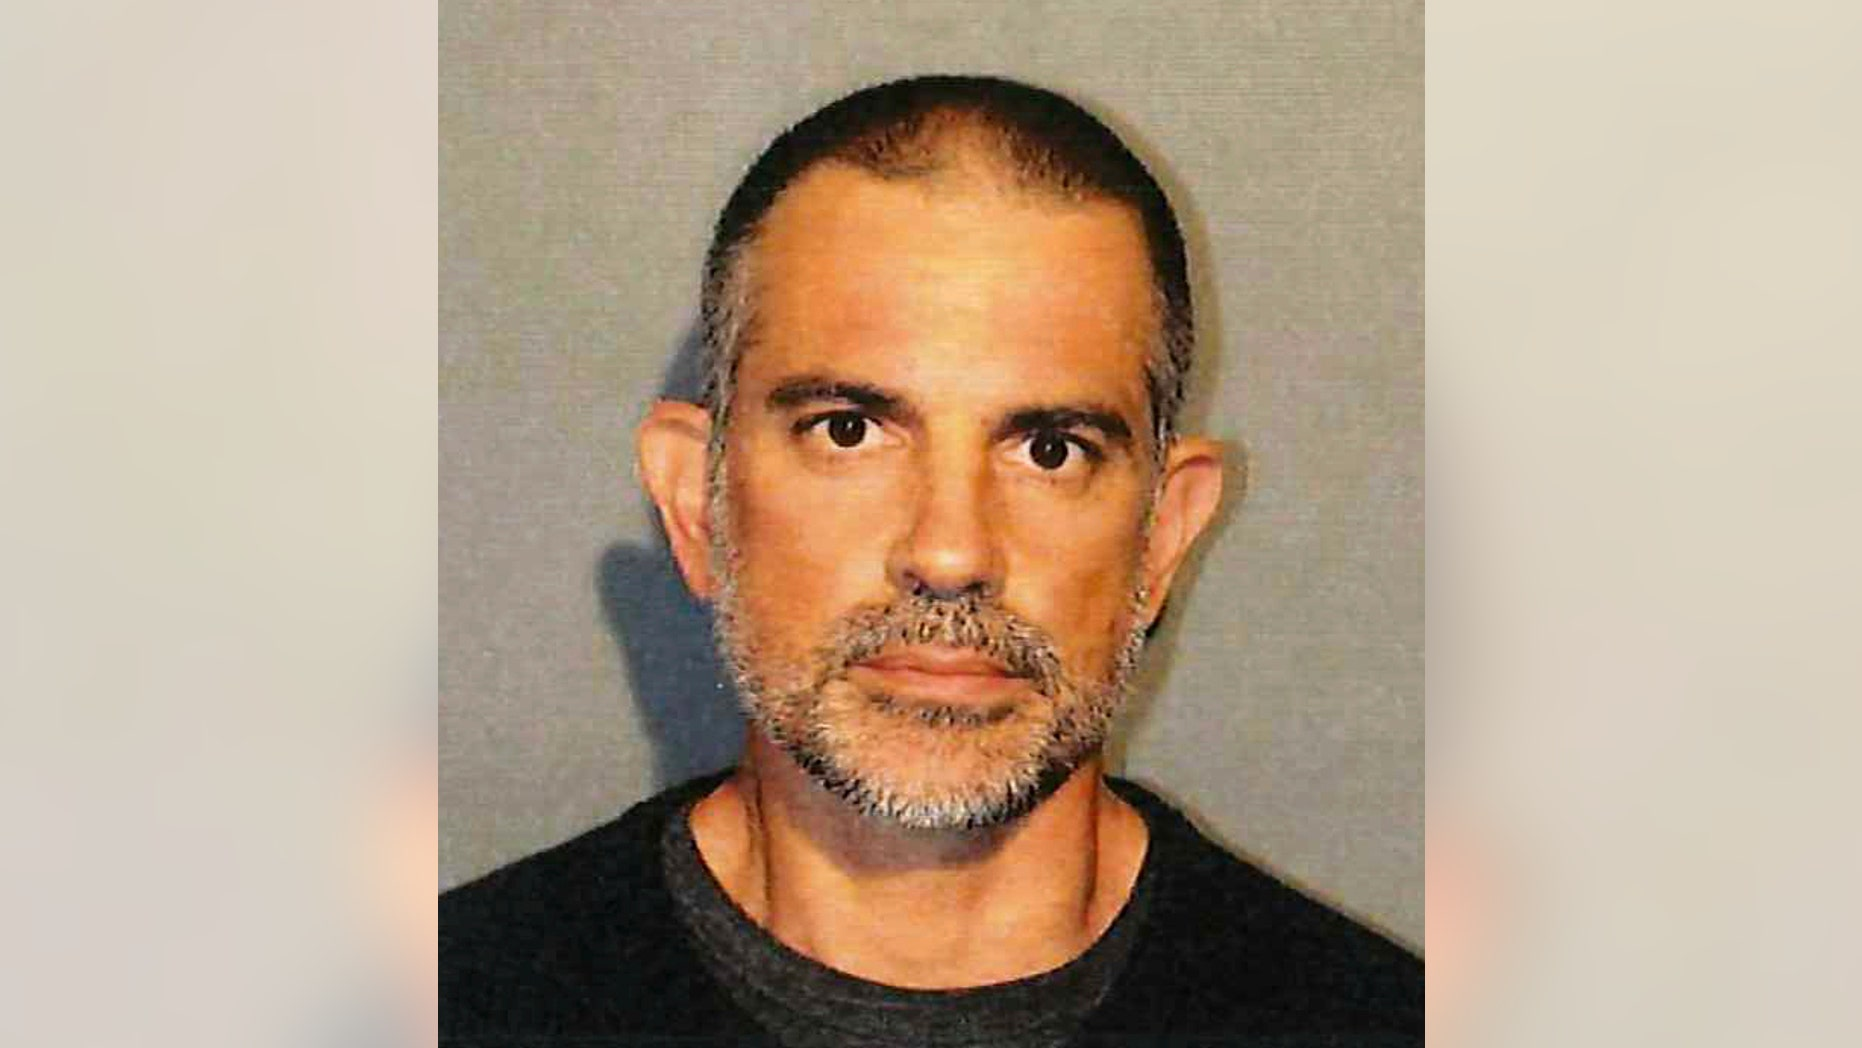 This photo provided by the New Canaan Police Department shows Fotis Dulos. Police in Connecticut have arrested a missing mother of five's estranged husband and his girlfriend on charges of evidence tampering and hindering prosecution. New Canaan authorities announced Sunday, June 2, 2019, the arrests of 51-year-old Dulos and 44-year-old Michelle C. Troconis. Both were detained on $500,000 bail and are scheduled to be arraigned Monday in Norwalk Superior Court. Details of the allegations were not released. (New Canaan Police Department via AP)